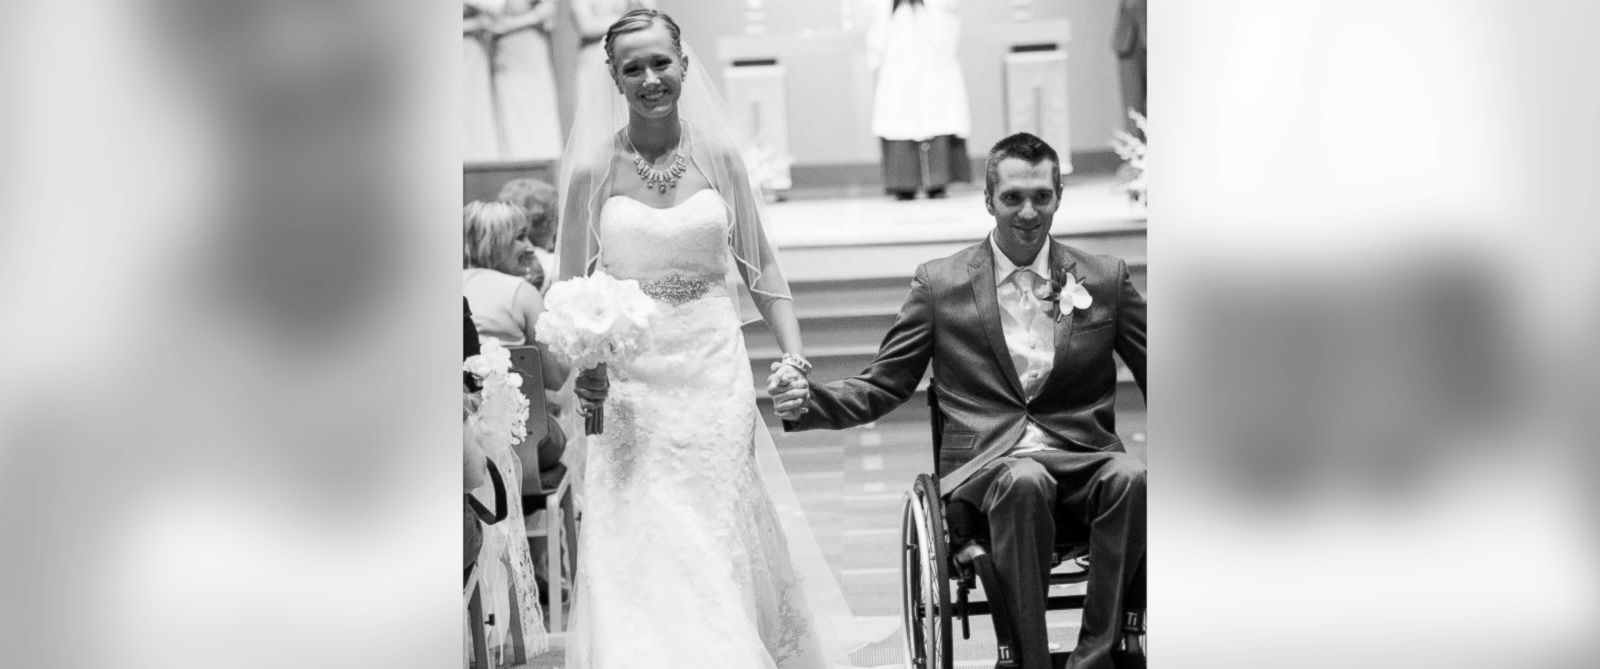 PHOTO: Sgt. Joey Johnson, who suffered a spinal cord injury in a motorcycle accident in 2012, married on June 28, 2014.